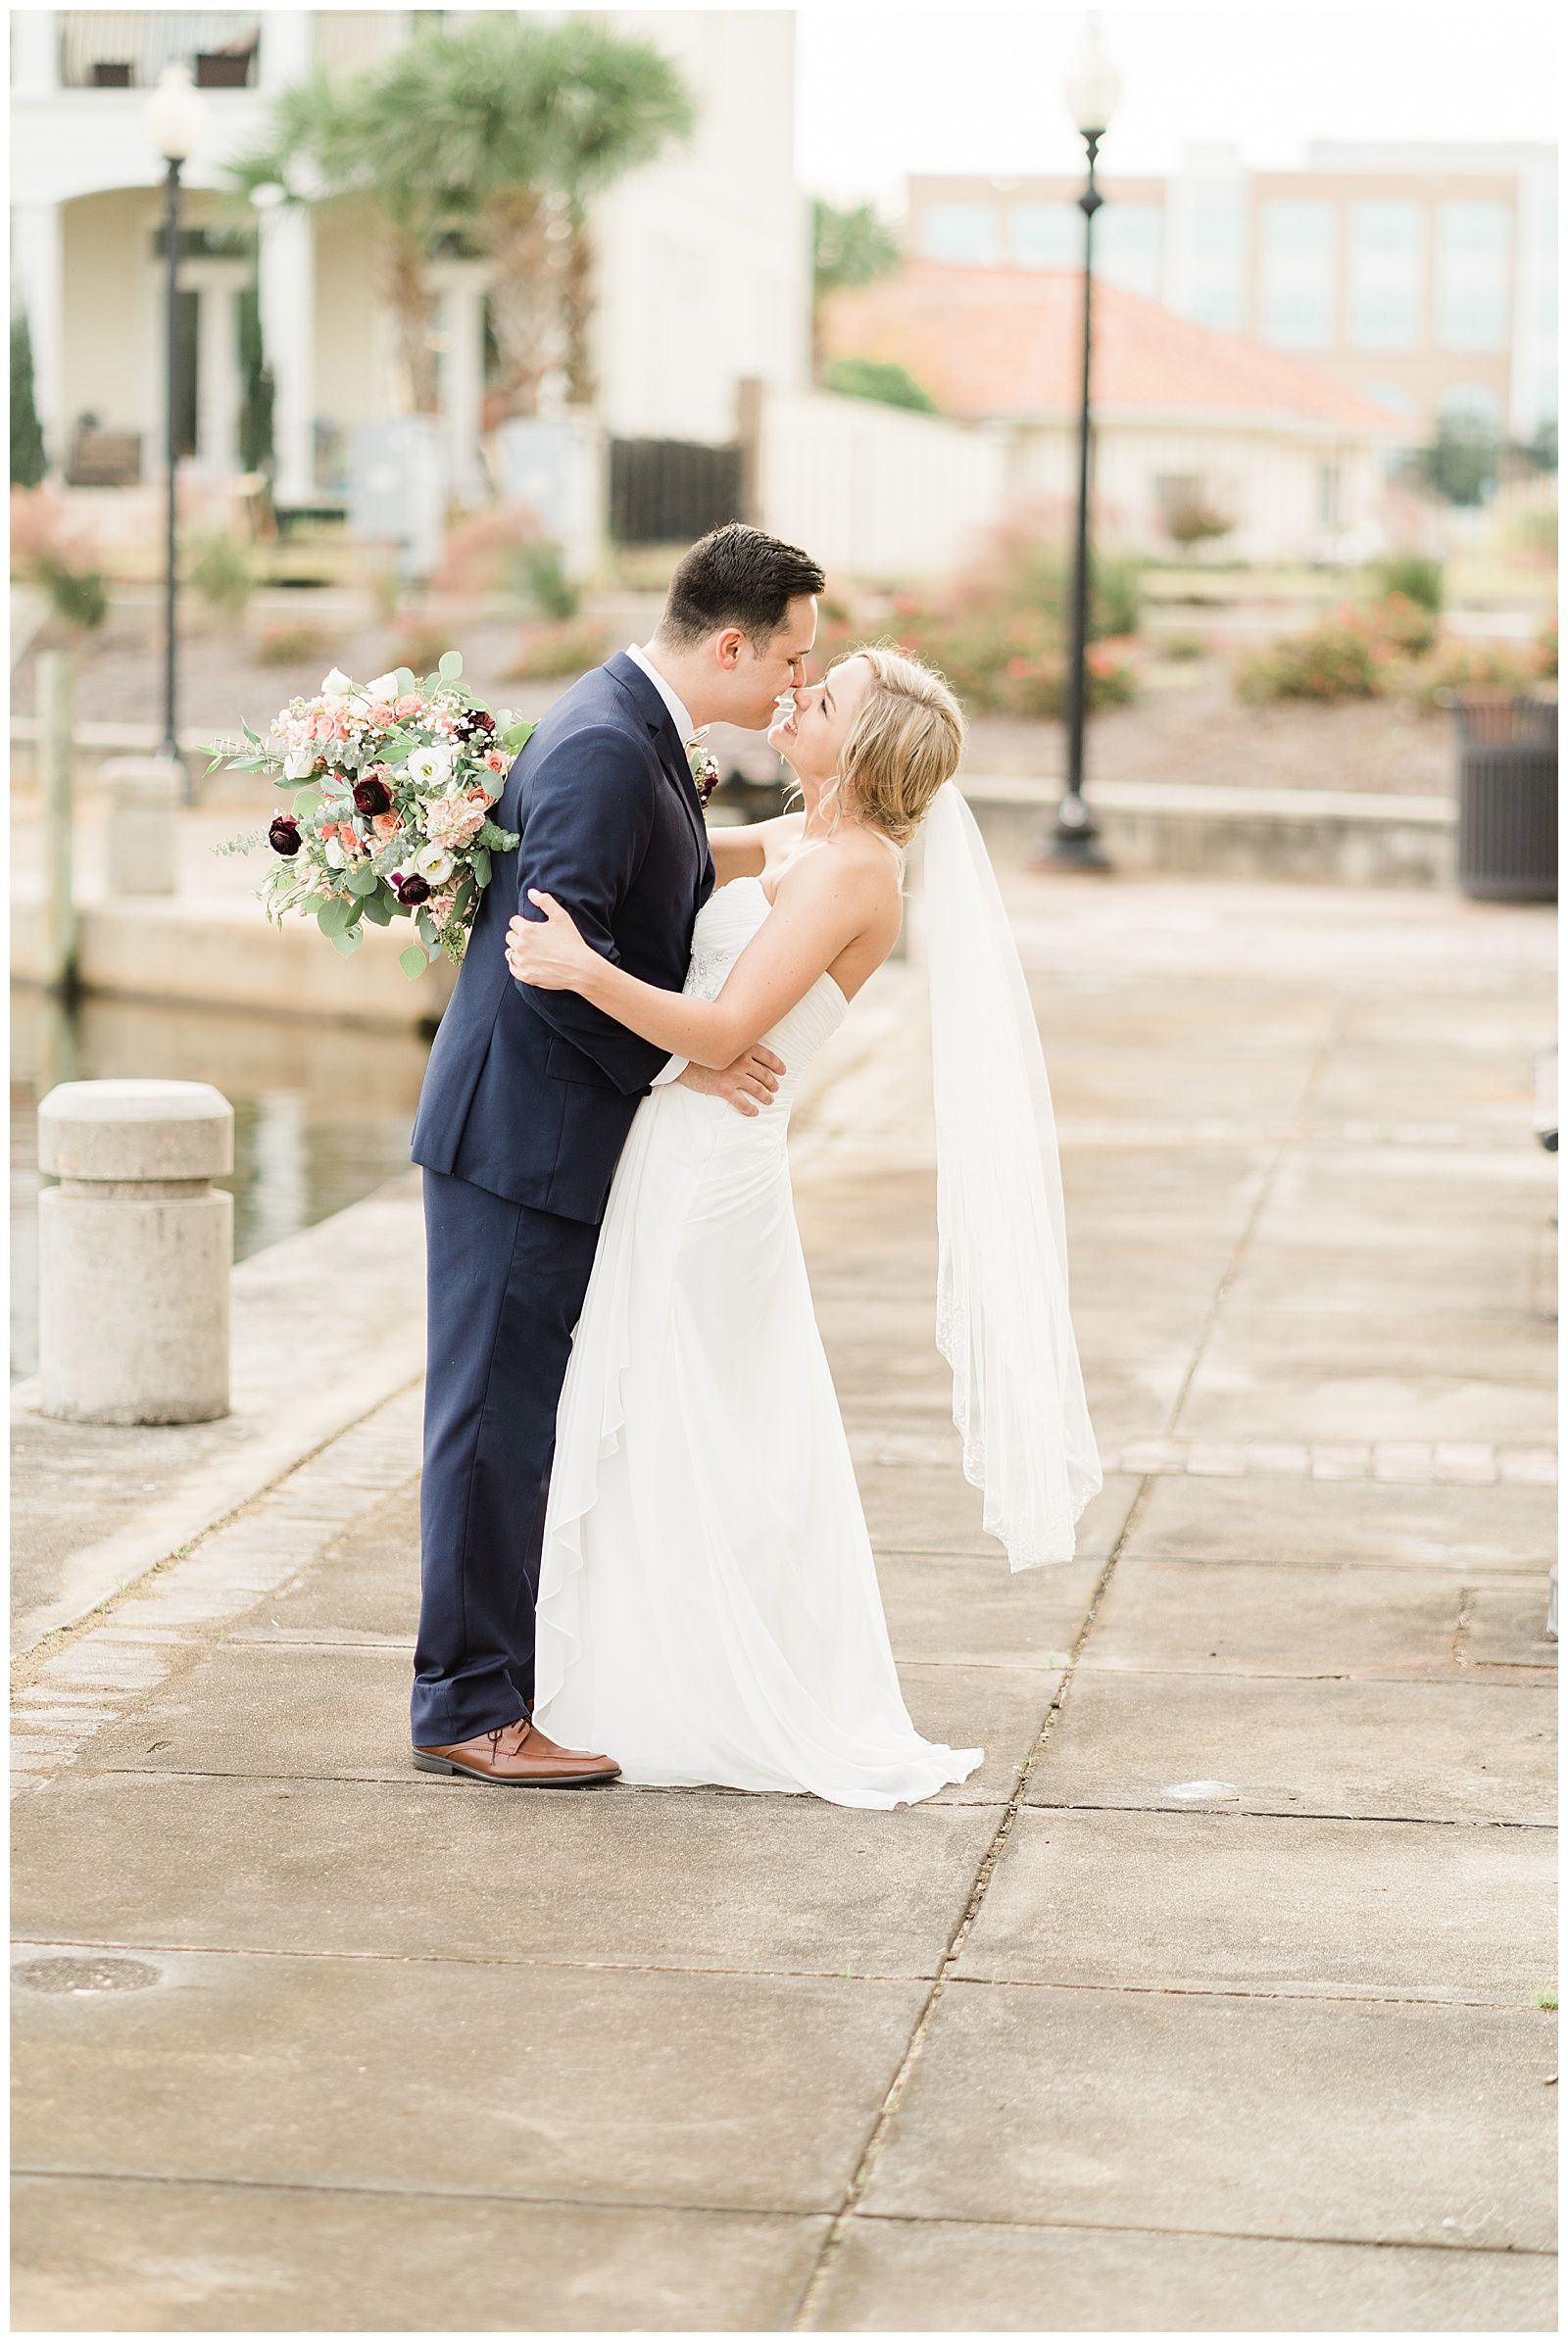 Pin On Bride And Groom Portraits